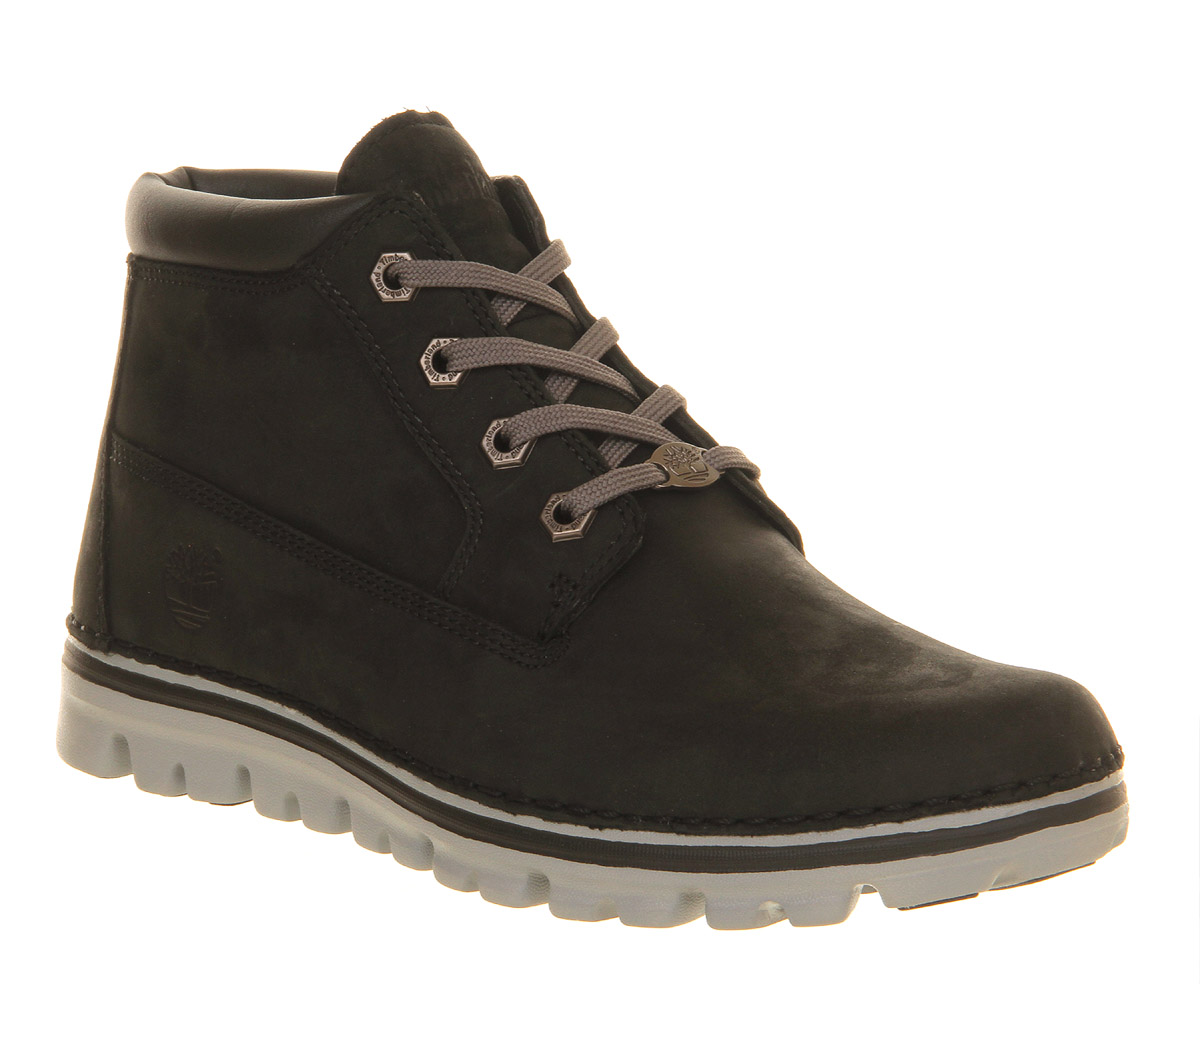 FR Sneaker - Marron - Timberland 6 Inch Premium Bottes - Femmes Timberland  Bottes Chaussures Taille d5c1d8c2f08e